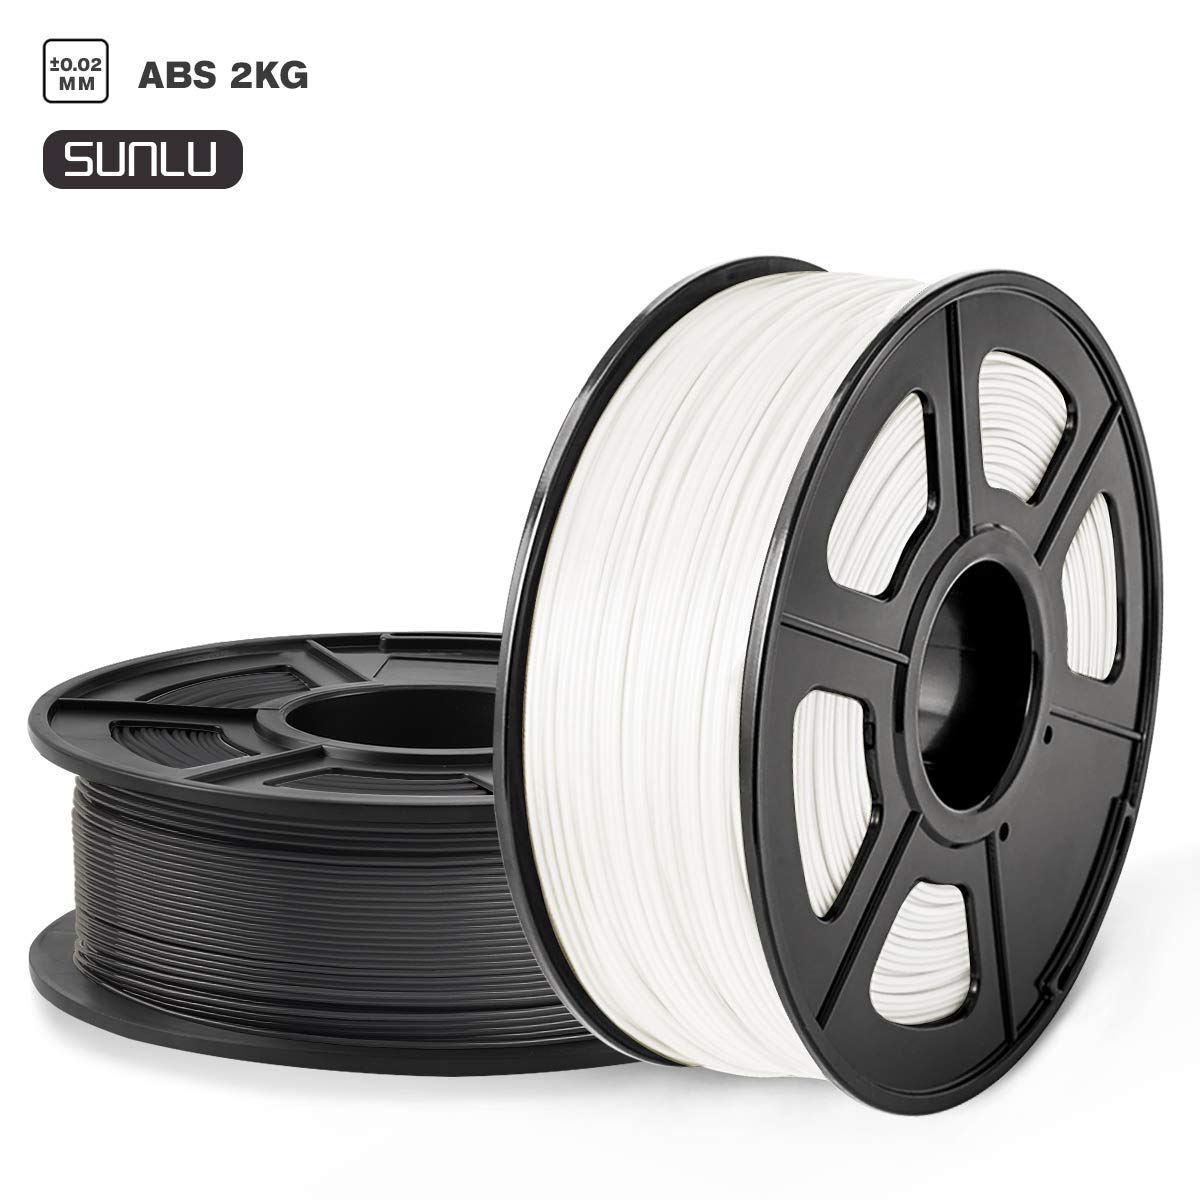 ABS Filament 1.75mm Dimensional Accuracy +//- 0.02 mm 2 kg Spool ABS Black+Gray 1.75mm SUNLU ABS 3D Printer Filament